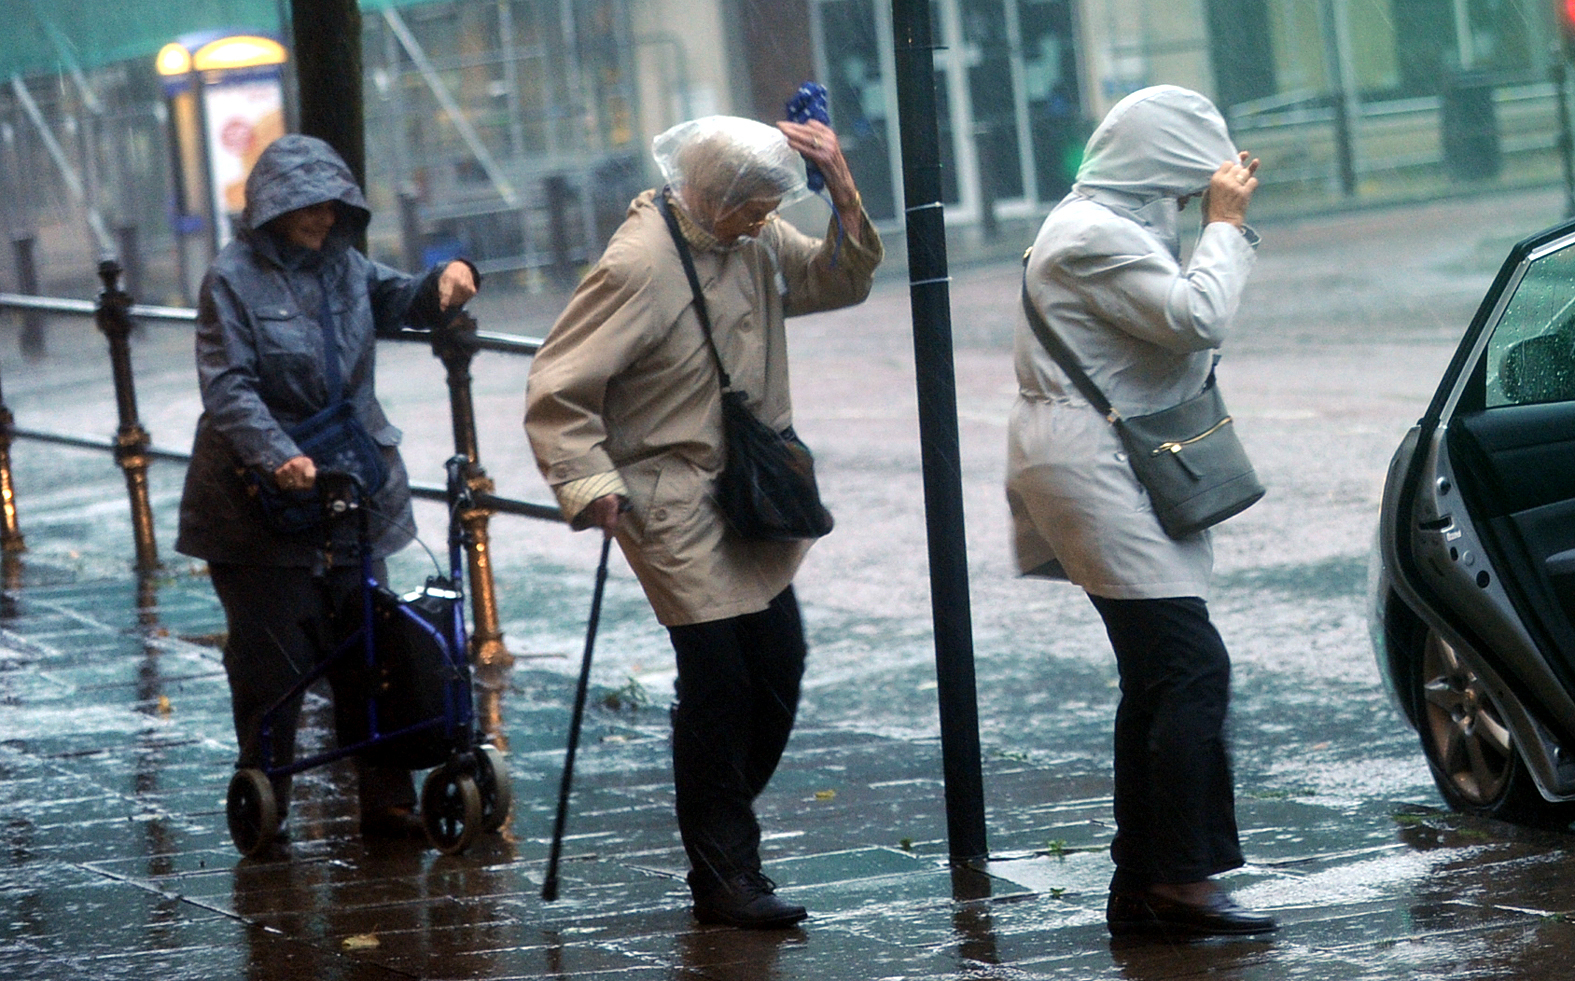 RAIN: Three ladies brave Storm Brian as it batters the North West